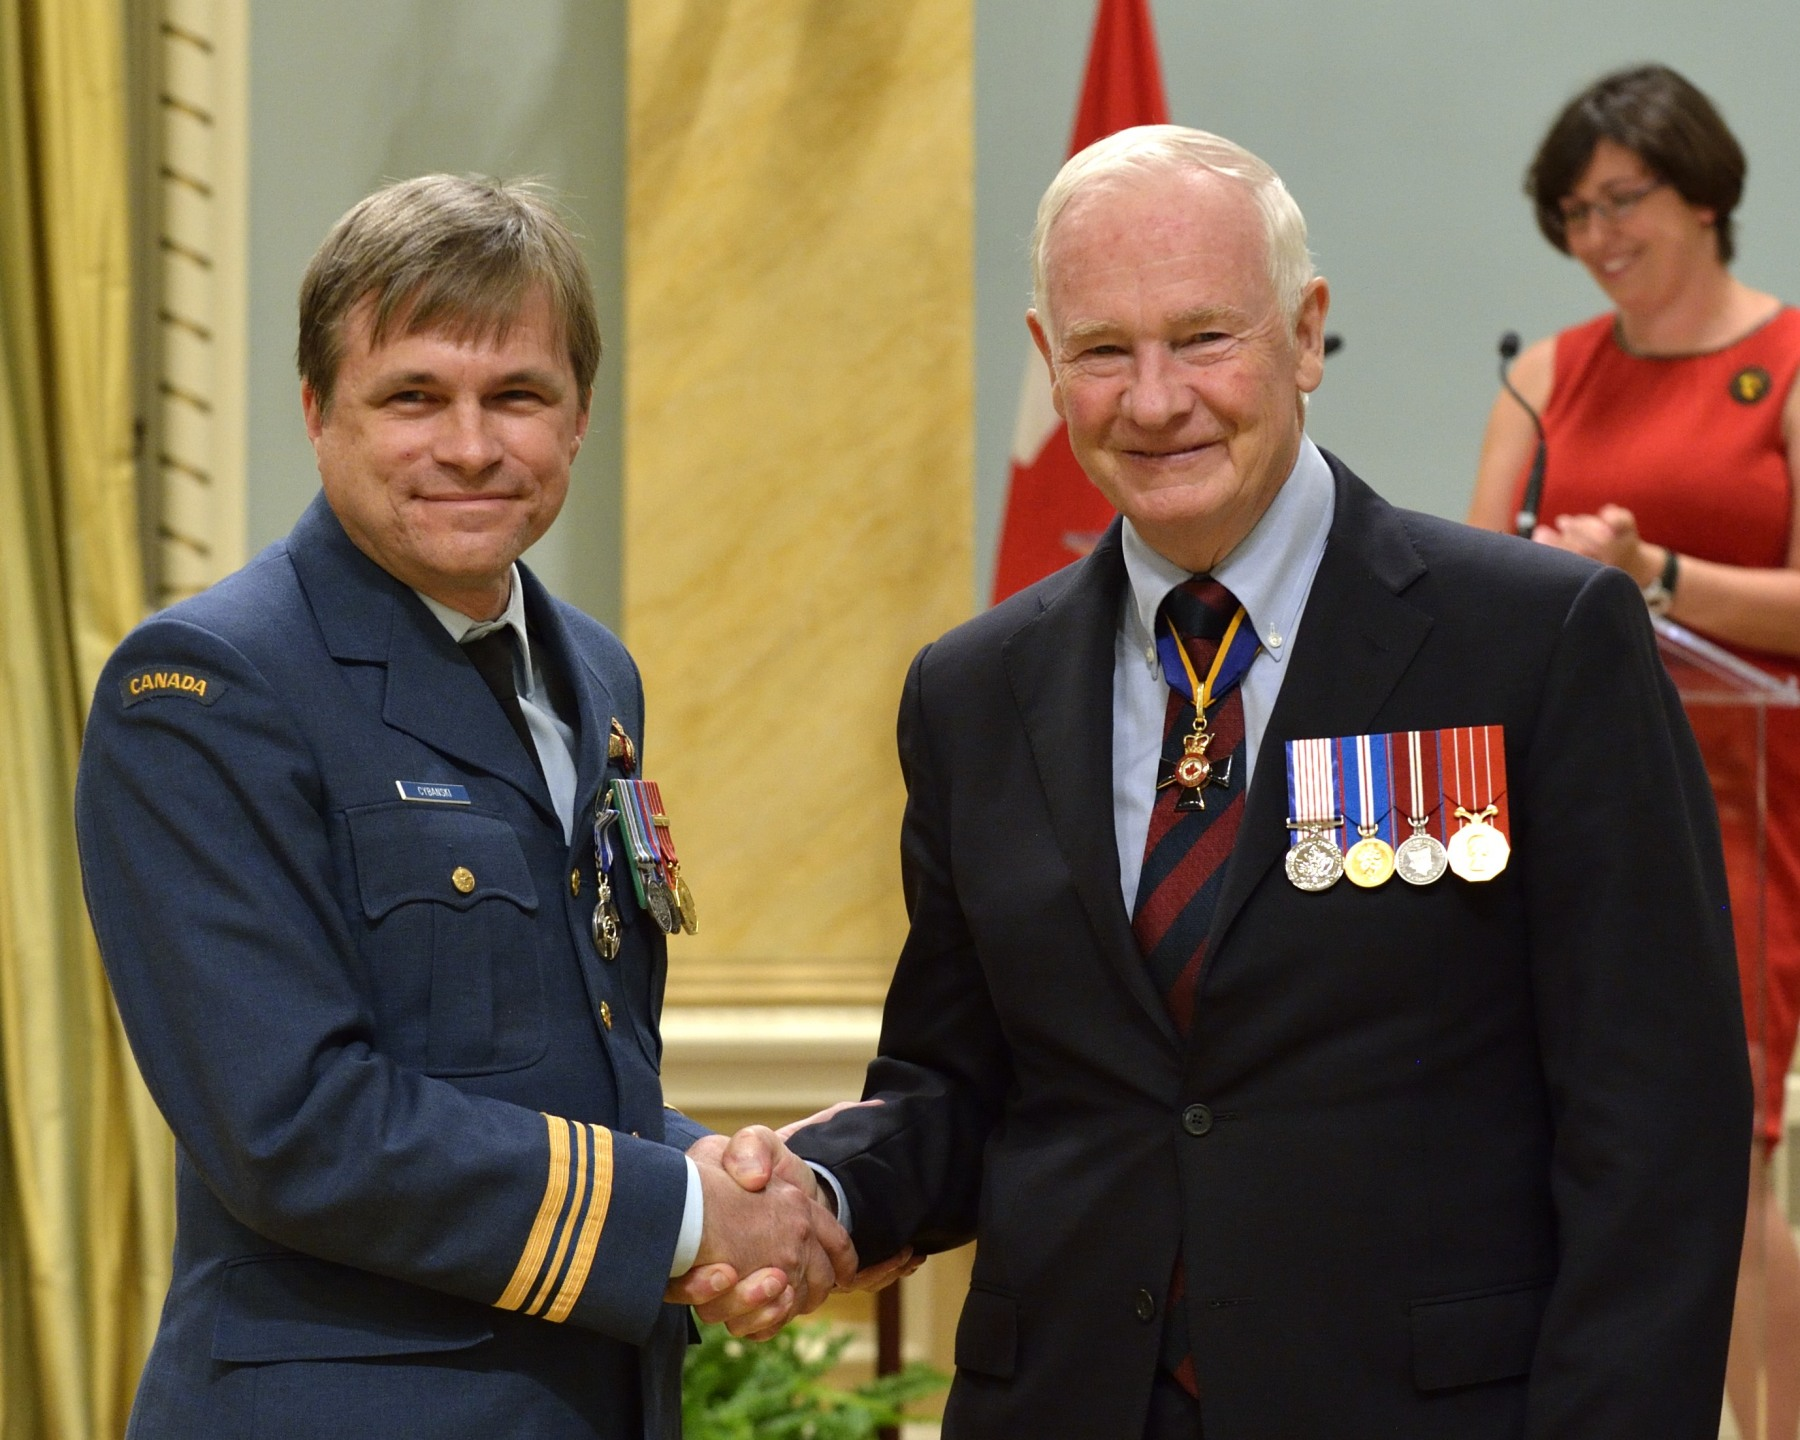 Major Adam Richard Cybanski, M.S.M., C.D. (Kemptville, Ontario) received the Meritorious Service Medal (Military Division). Since 2009, Major Cybanski has demonstrated exceptional dedication to developing innovative flight safety processes. His accomplishments in flight-path reconstruction and visualization have greatly enhanced Canada's reputation as a leader in the field of flight safety, and will serve the interest of our flight safety program and the aviation communities for years to come. Major Cybanski's unassailable logic and unmatched expertise have been recognized at the national and international levels, and have brought great honour to the Canadian Armed Forces and to Canada.